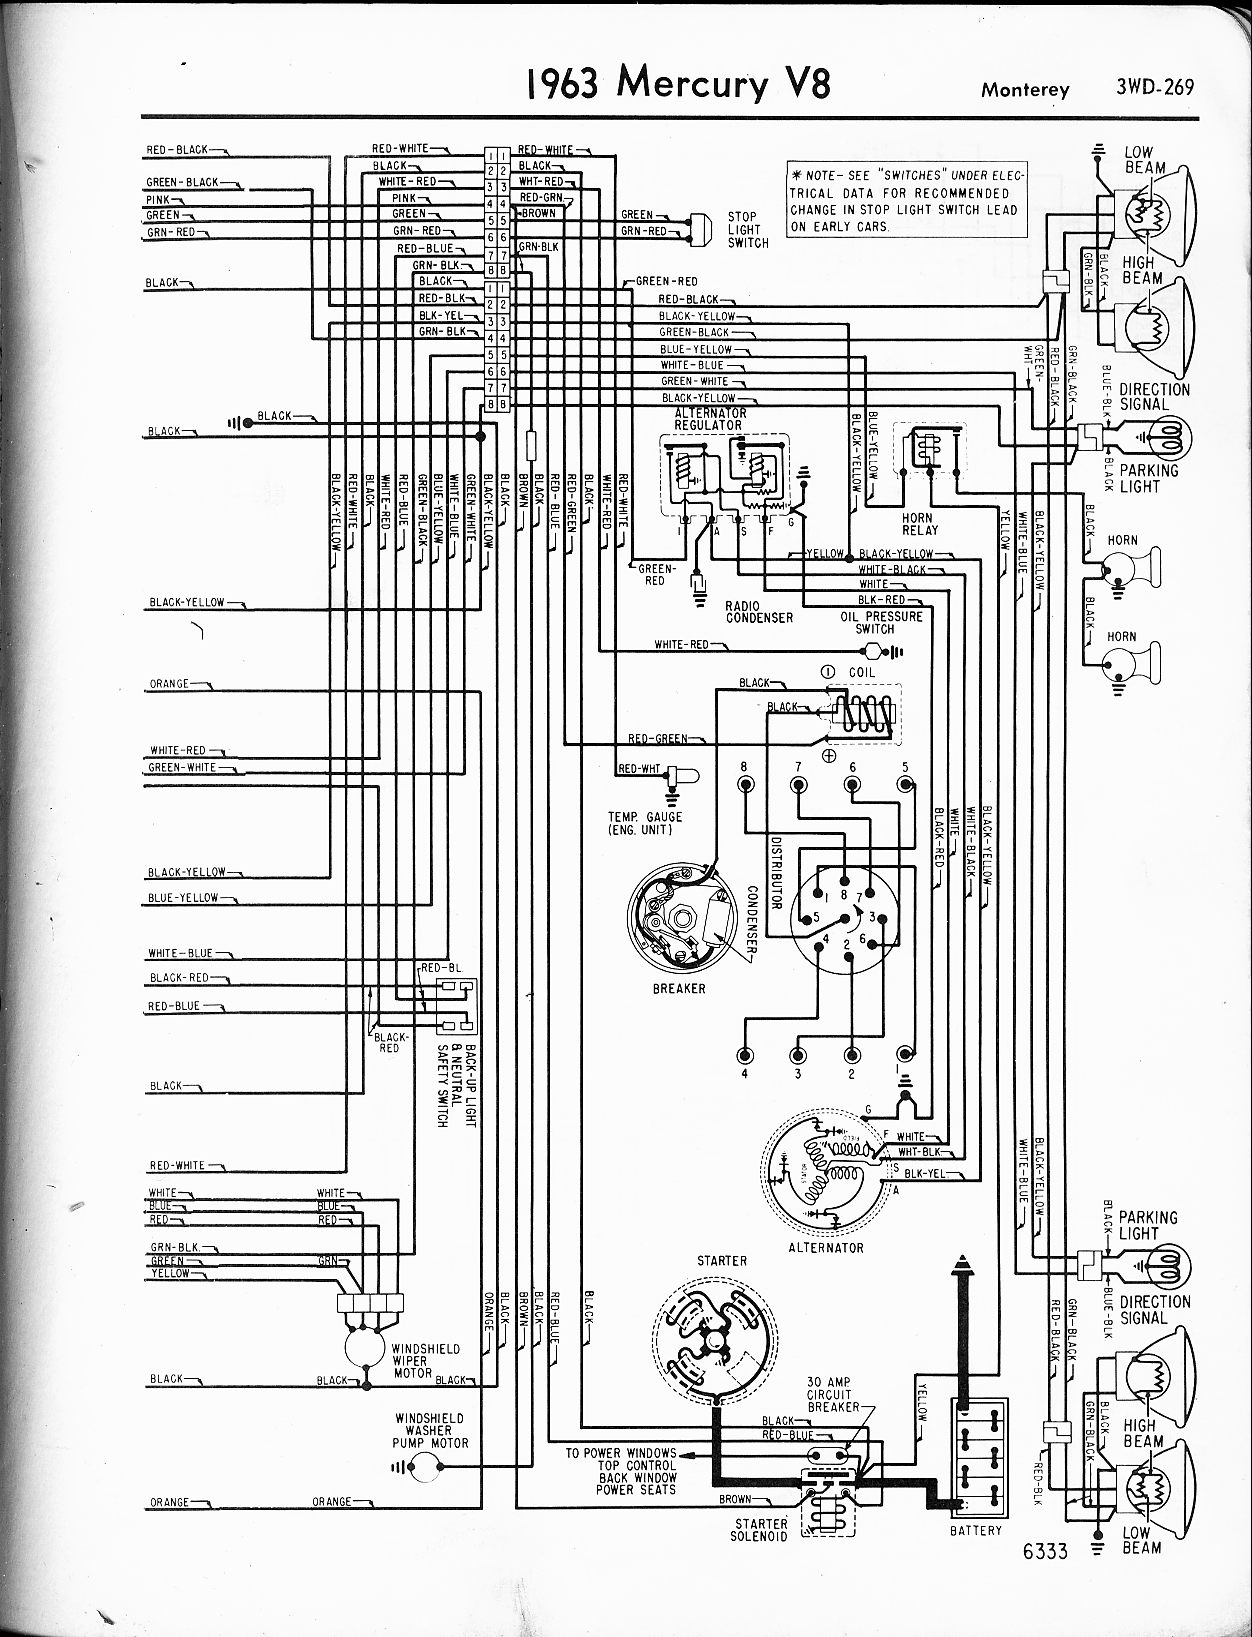 1966 Mercury Park Lane Wiring Diagram Library 80 Hp 6 And V8 Meteor 1963 Monterey Right Page